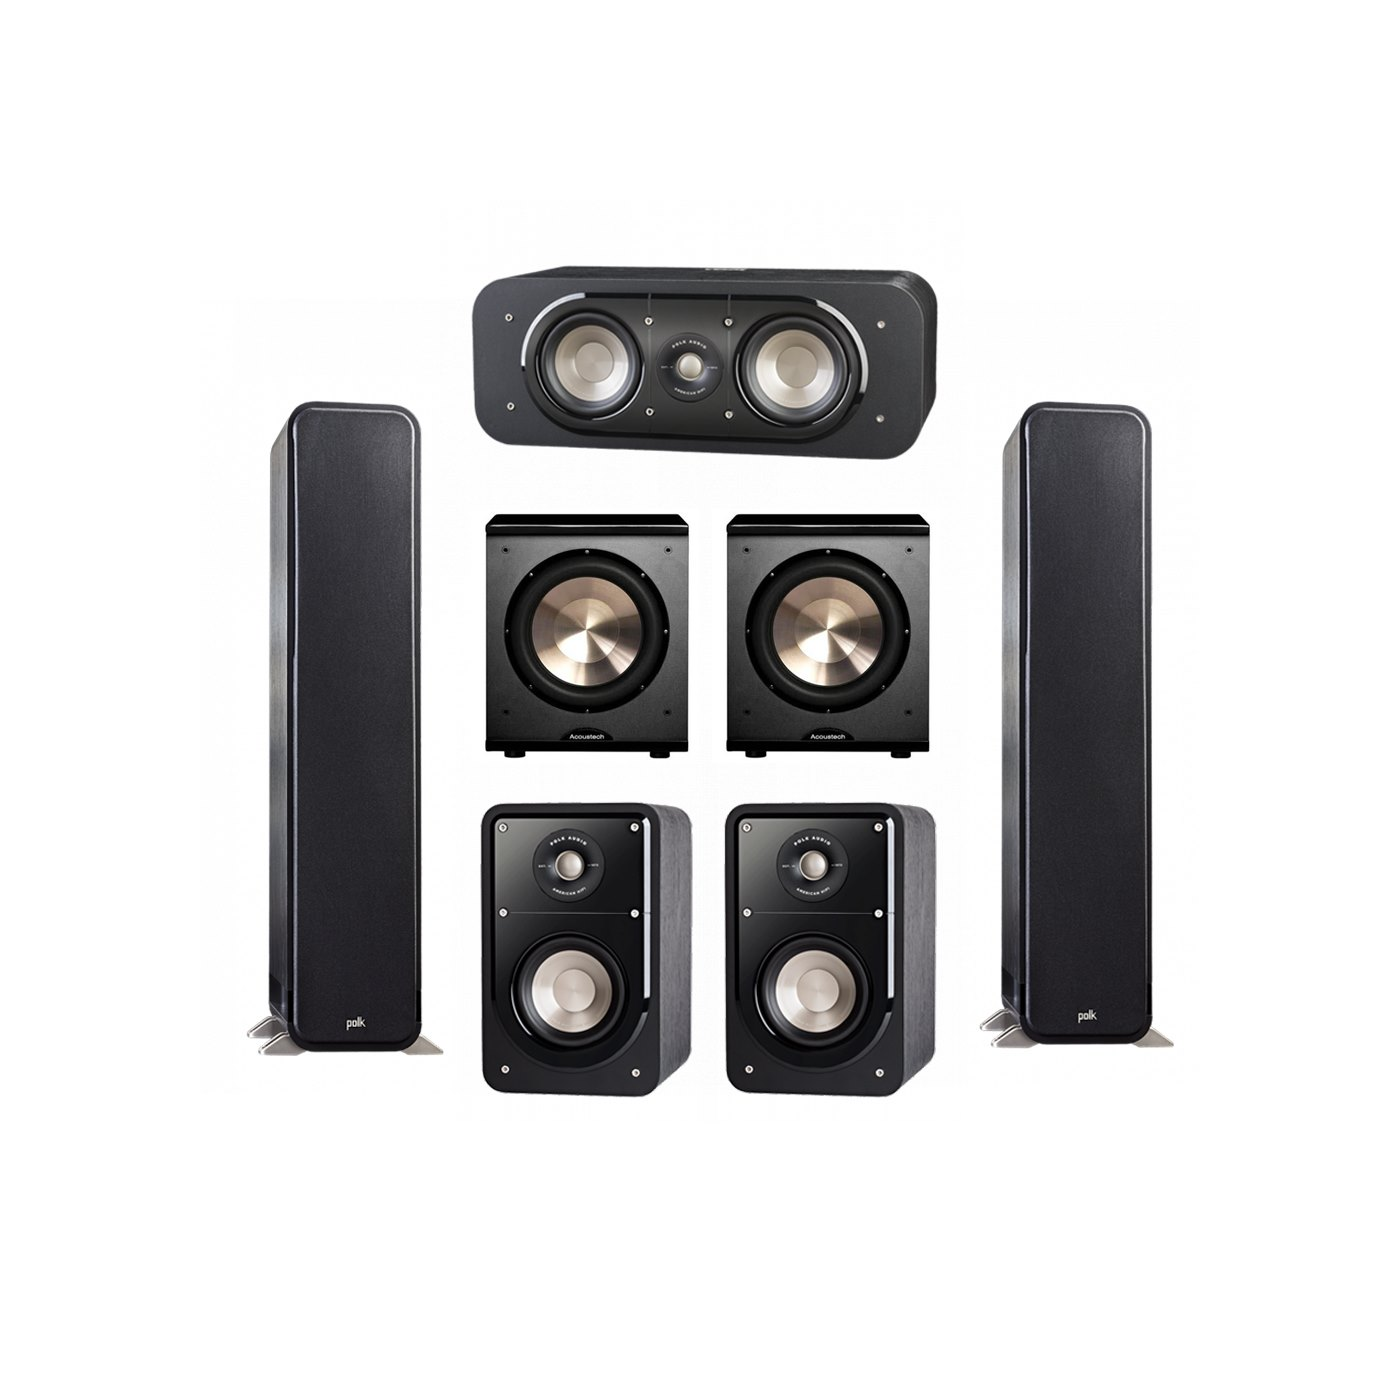 Polk Audio Signature 5.2 System with 2 S55 Tower Speaker, 1 Polk S30 Center Speaker, 2 Polk S15 Bookshelf Speaker, 2 BIC/Acoustech Platinum Series PL-200 Subwoofer